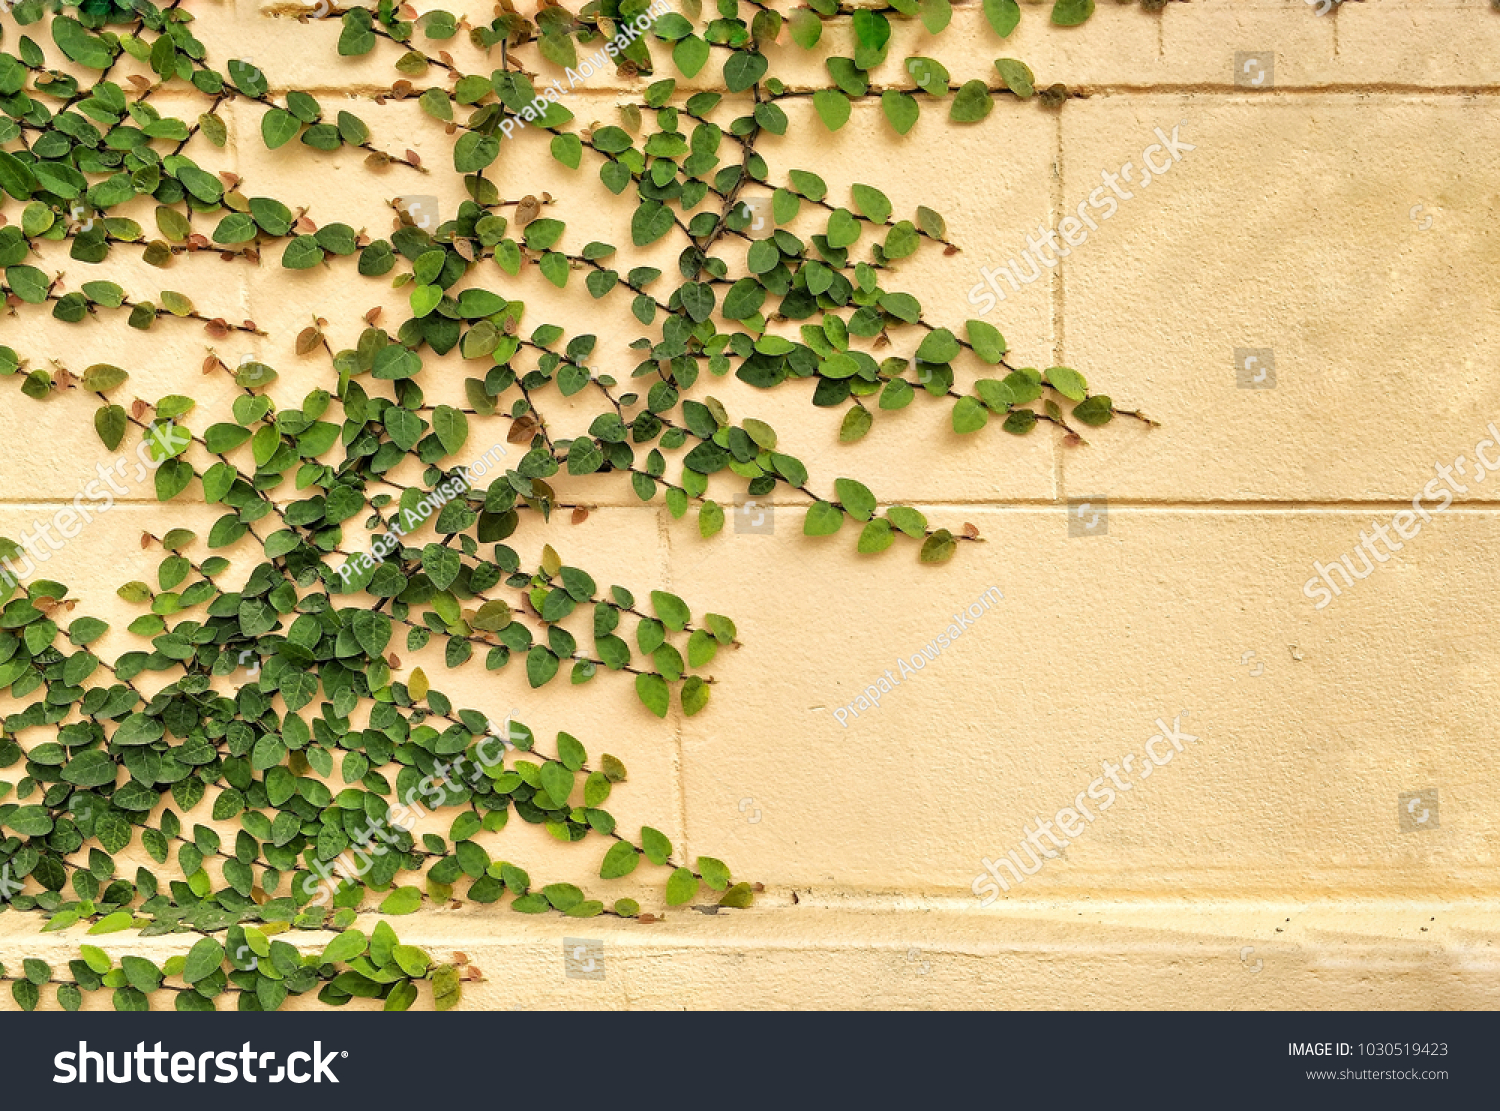 Creeper Plant Many Green Leaves Growing Stock Photo (Royalty Free ...